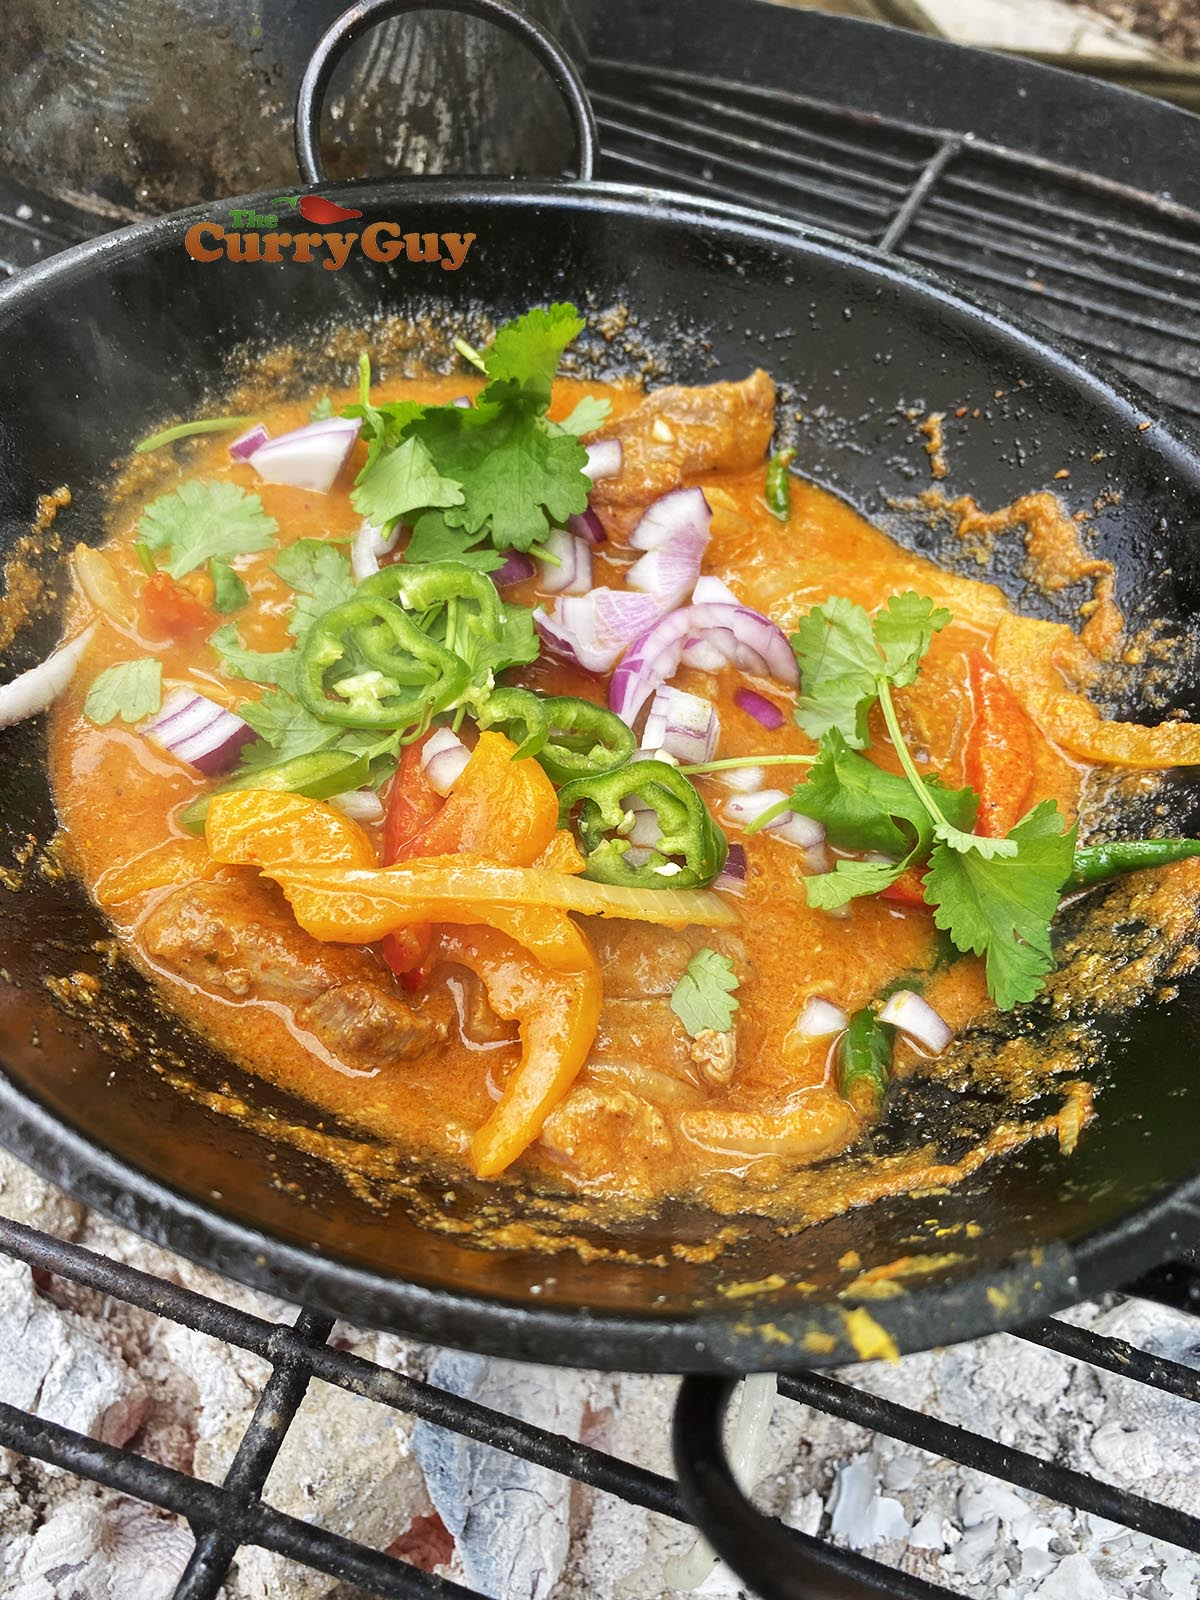 Garnishing with red onion and coriander